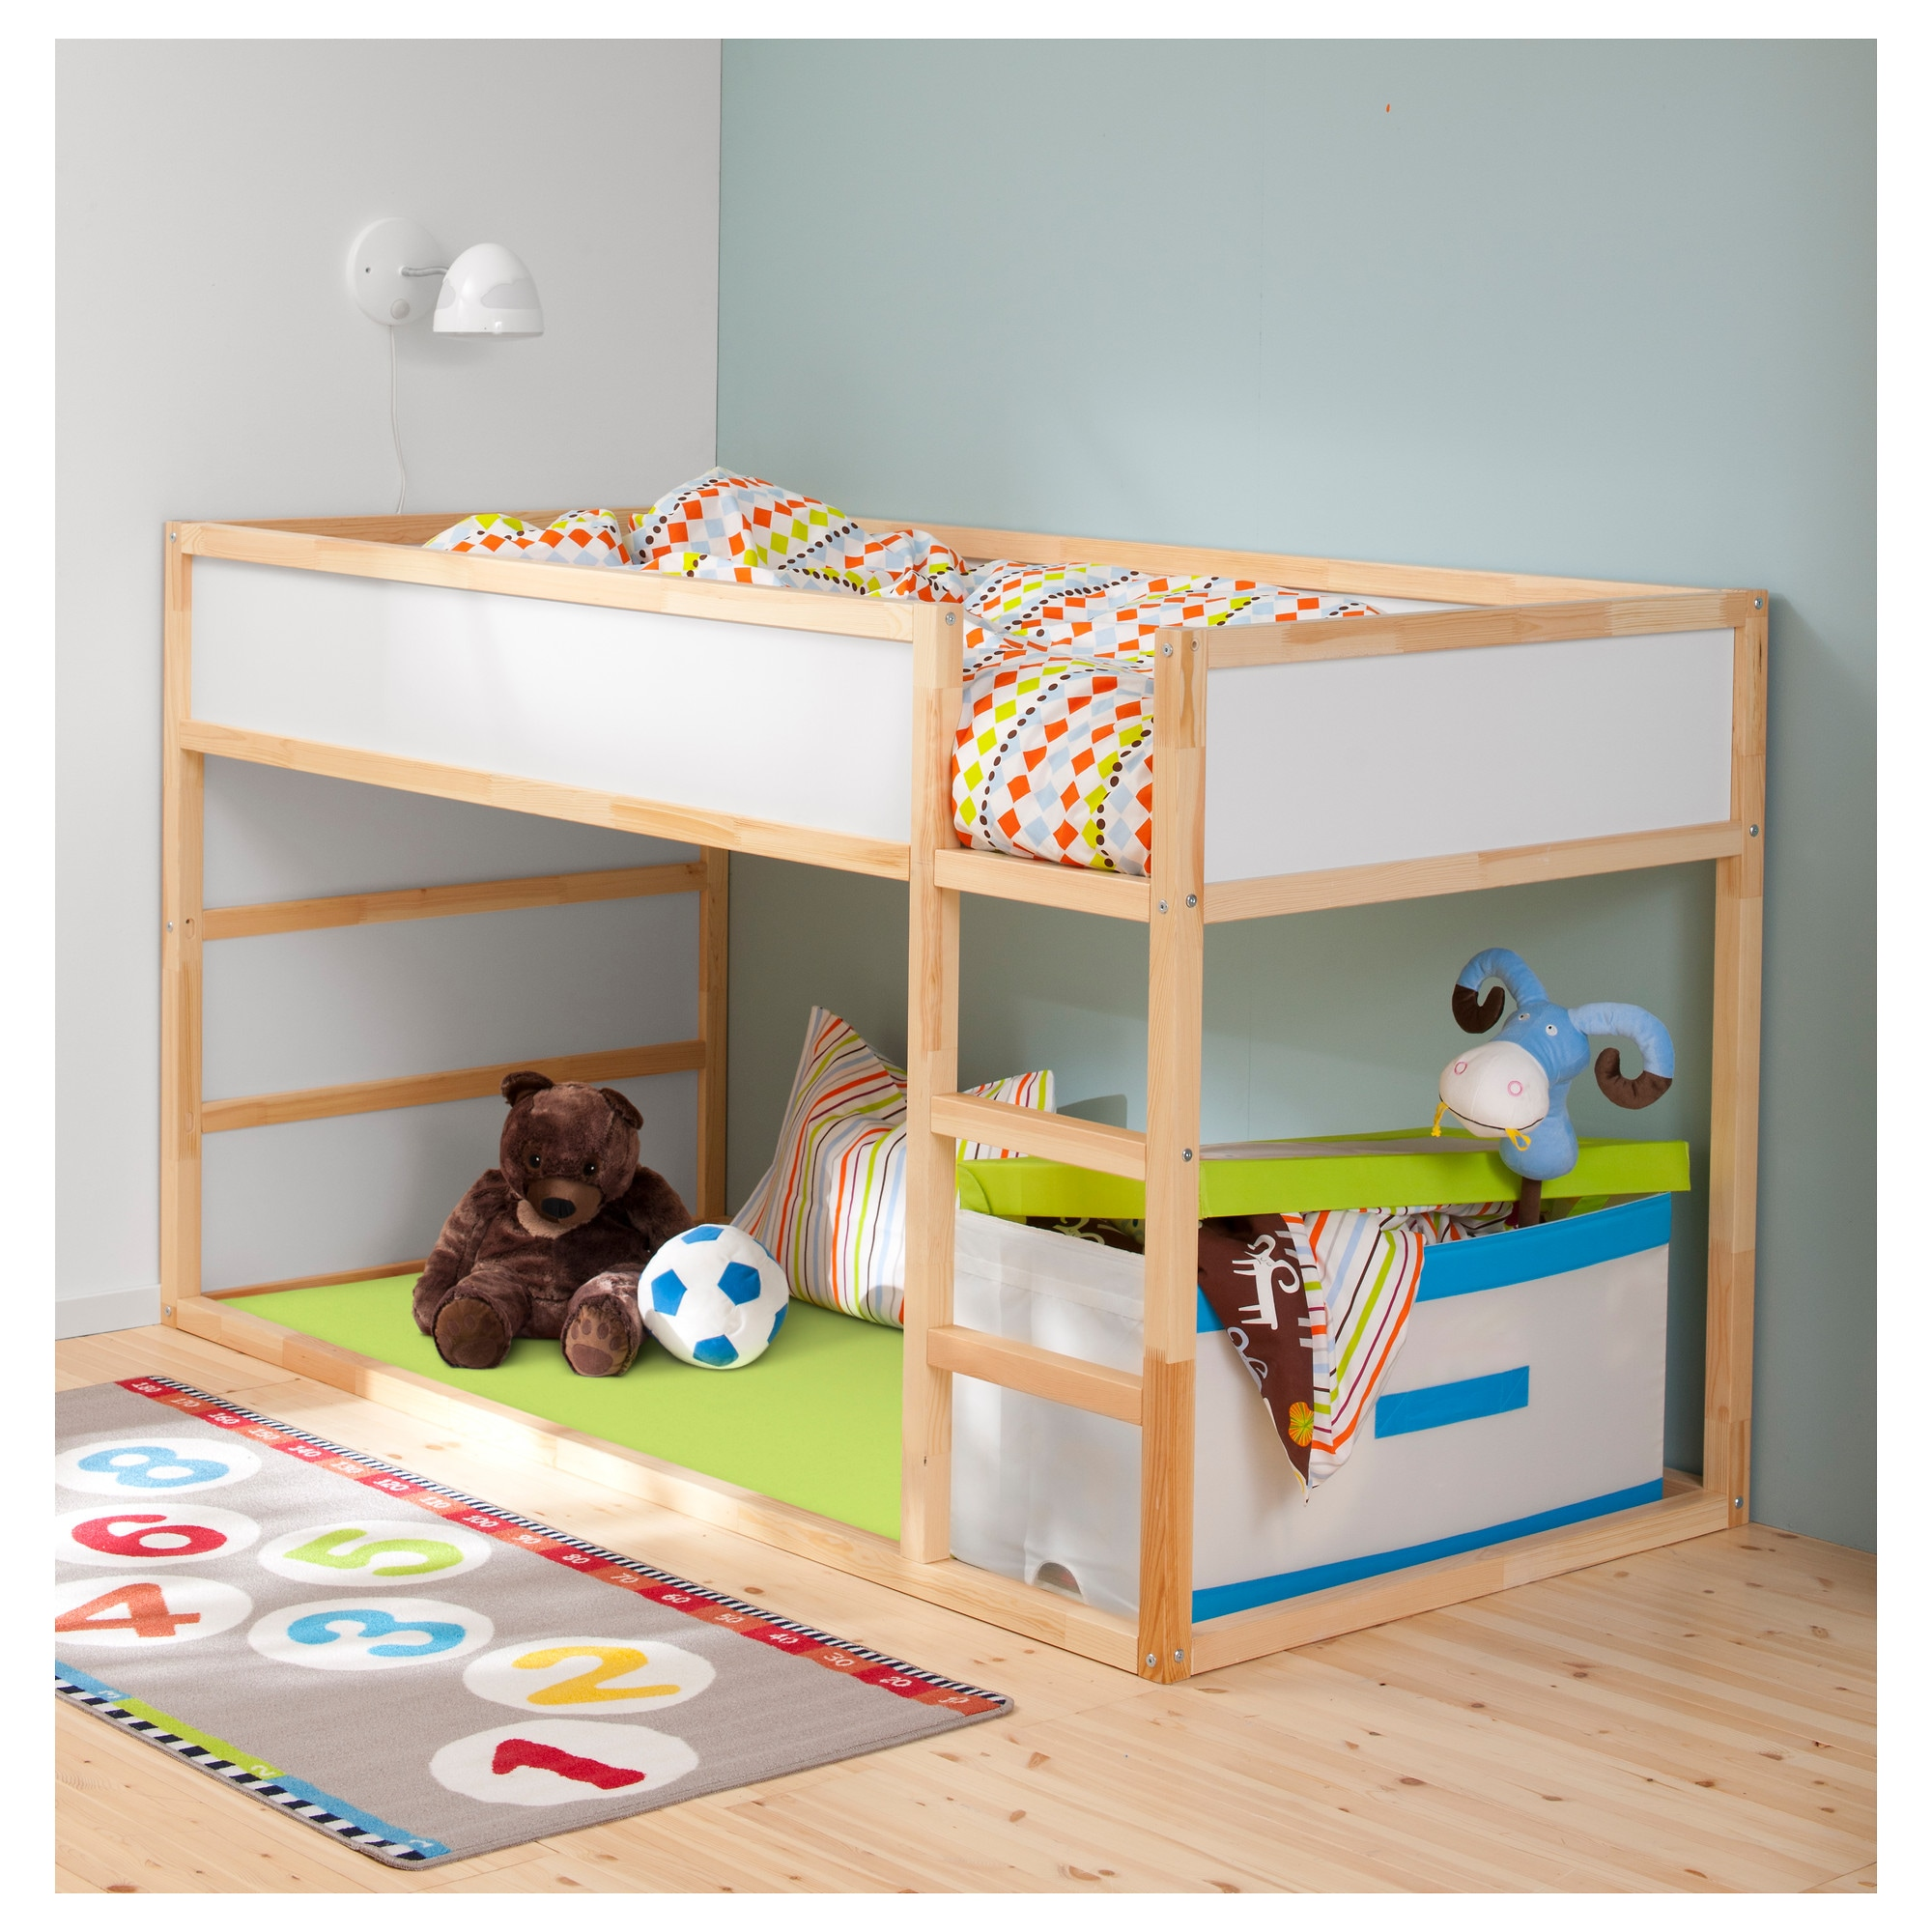 KURA Reversible Bed IKEA - Ikea kid bunk bed